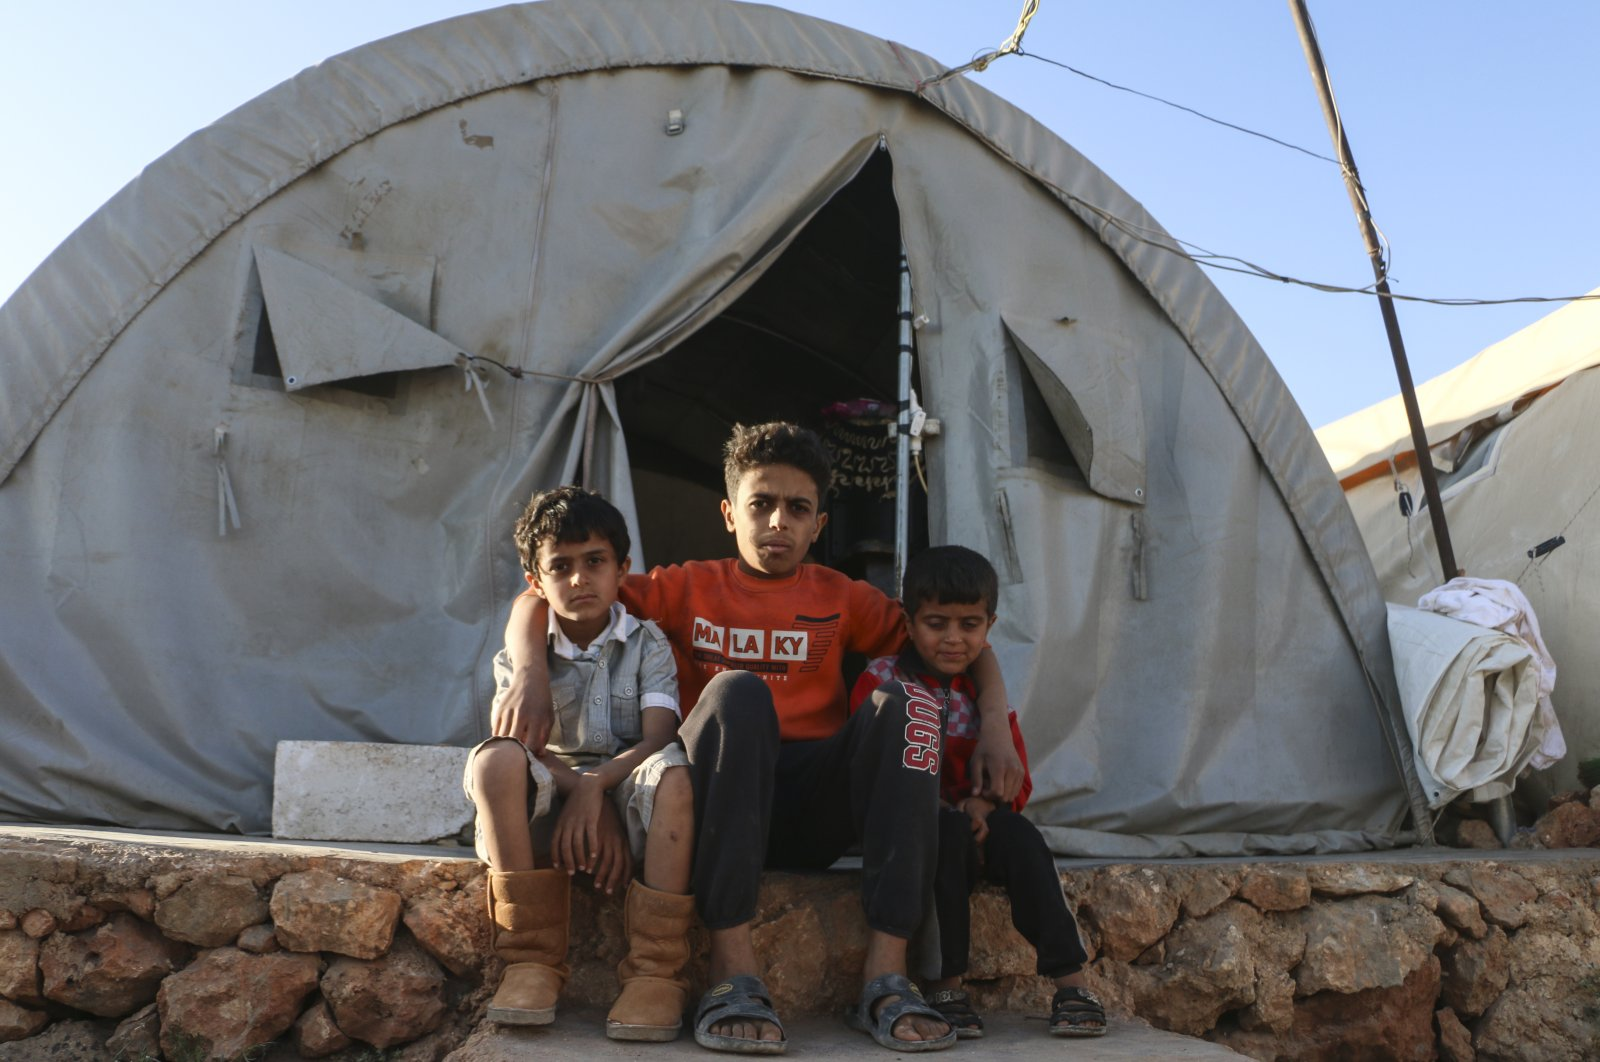 Mohammad, 14, who lost his parents in a bombing attack conducted by the Assad regime during Ramadan, has sought refuge with survivors in a tent camp pictured in this undated photo, in Idlib, Syria. (AA Photo)